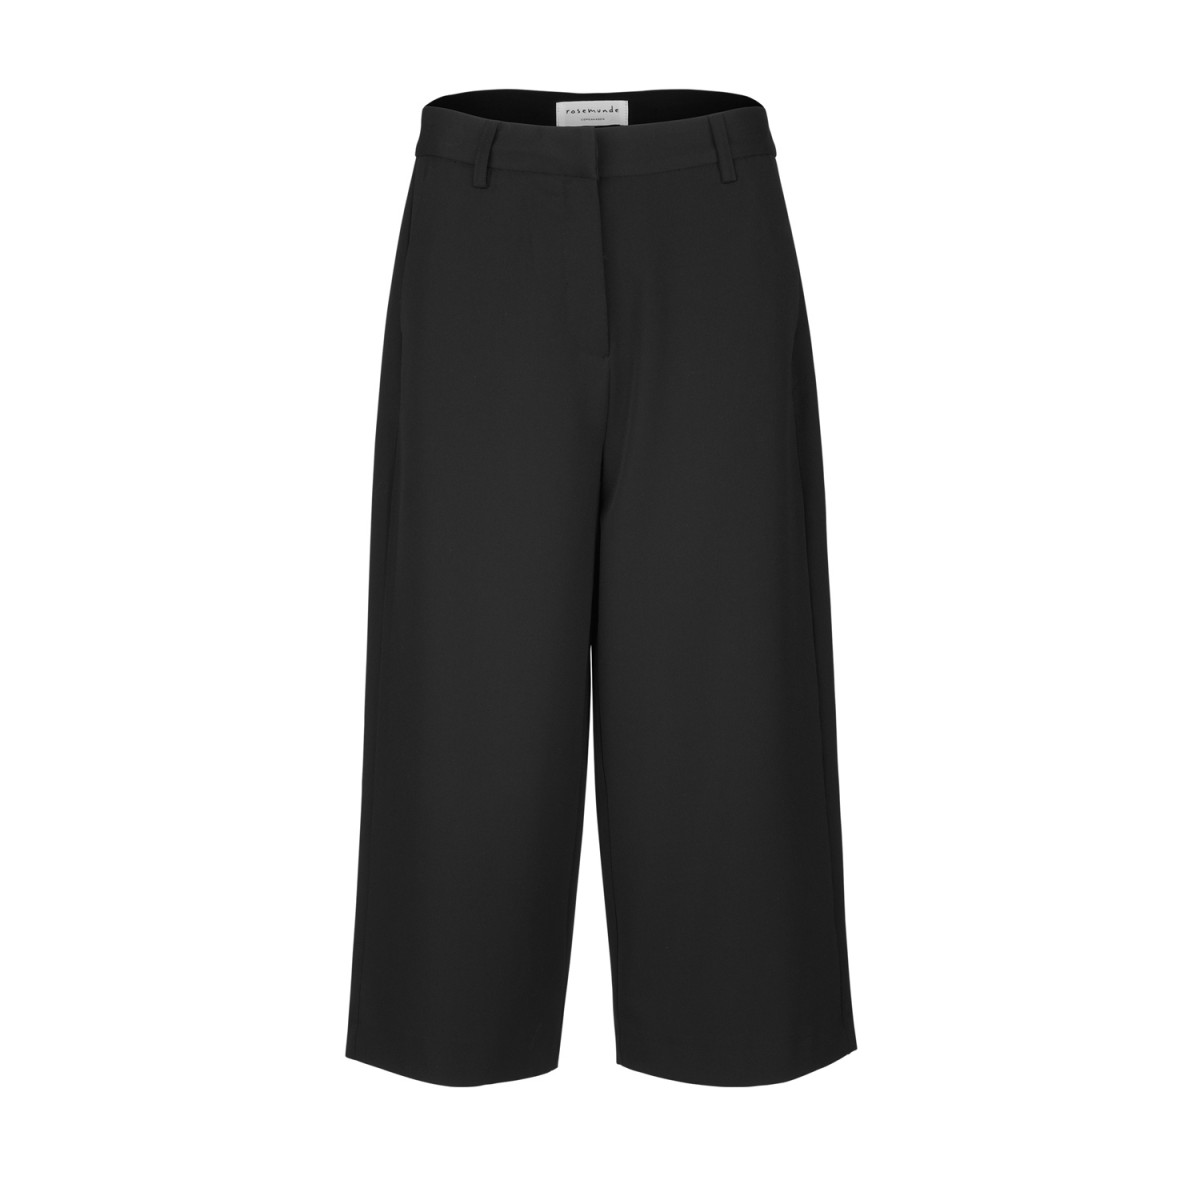 Rosemunde 6475-010 Trousers Black-31